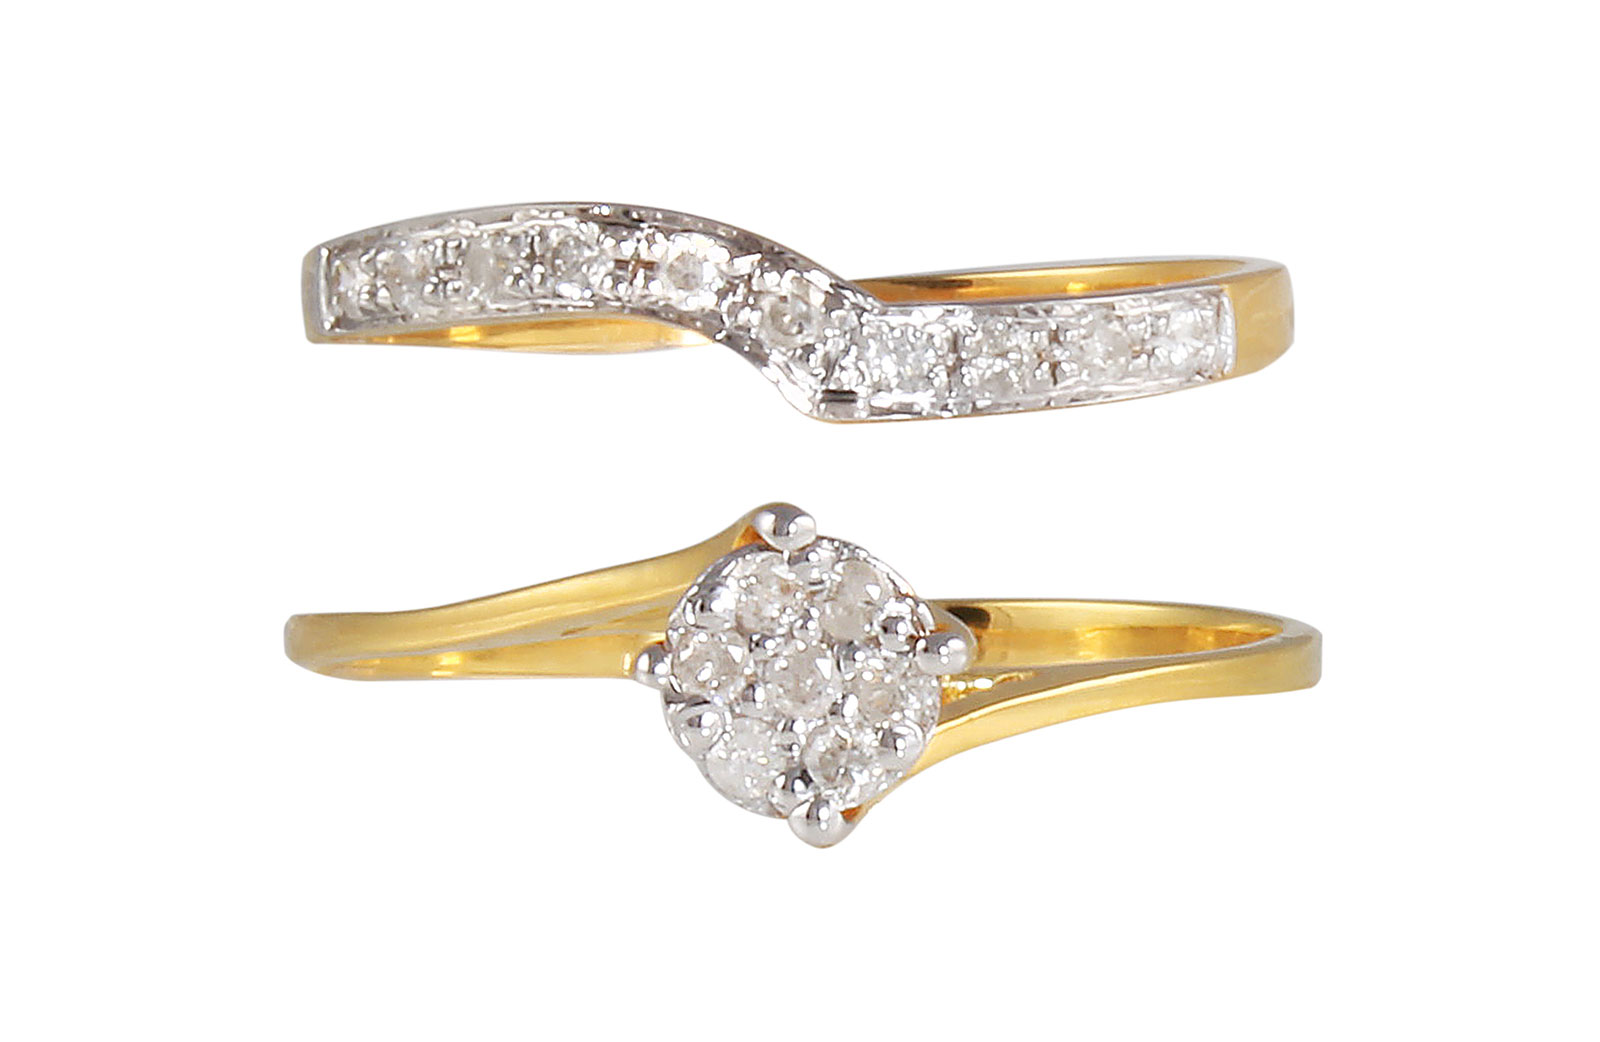 Vera Perla 18K Solid Yellow Gold 0.14Cts Genuine Diamonds  Twisted Engagement Rings Set -Size 6 US